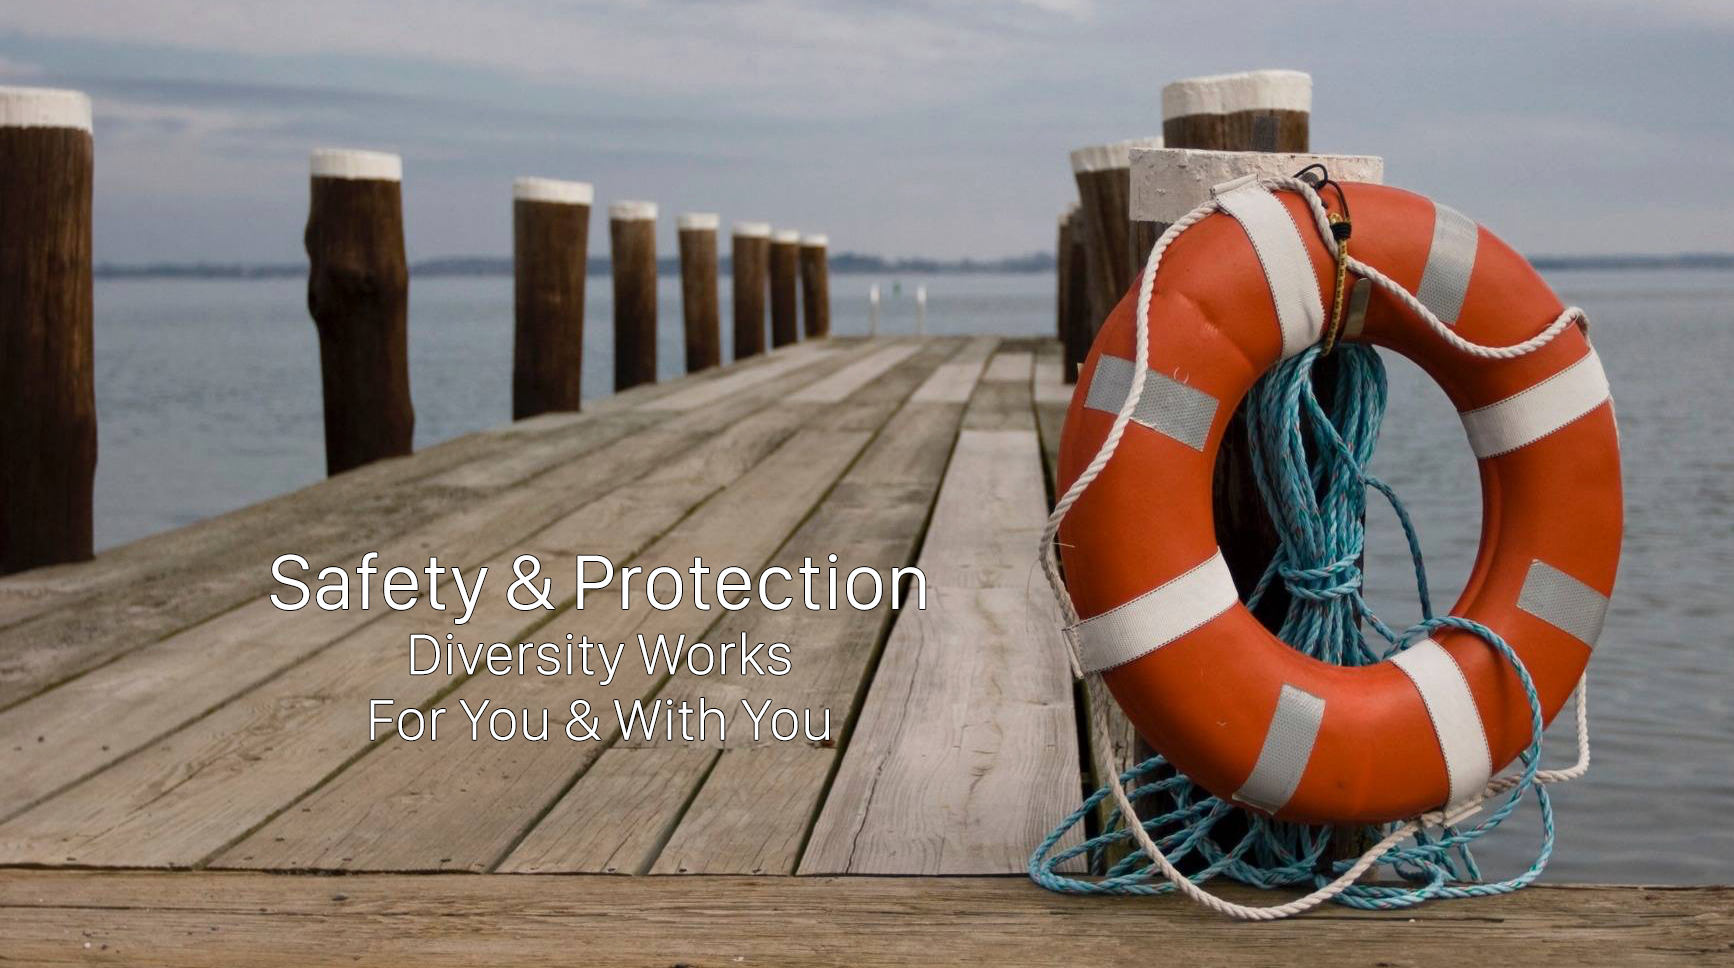 Safety and protection on your boat with tint